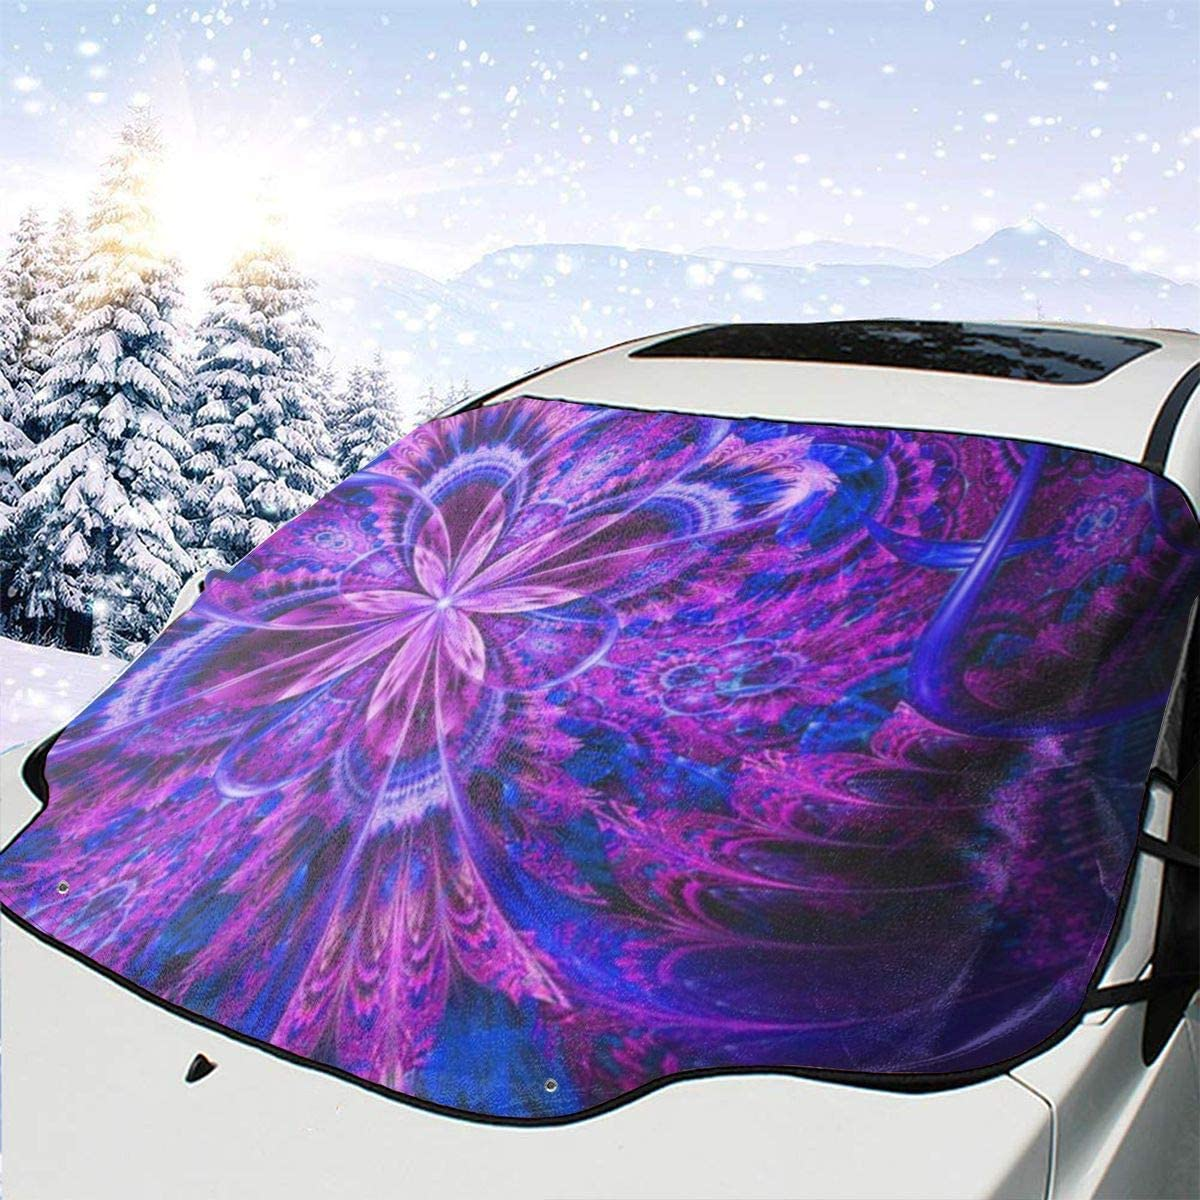 THONFIRE Car Front Window Windshield Winter Sun Shades Ancient Antique Blue Bronze Cover Windproof Blocks UV Rays Keeps Your Vehicle Cool Visor Protector Minivan Spring Heatshield